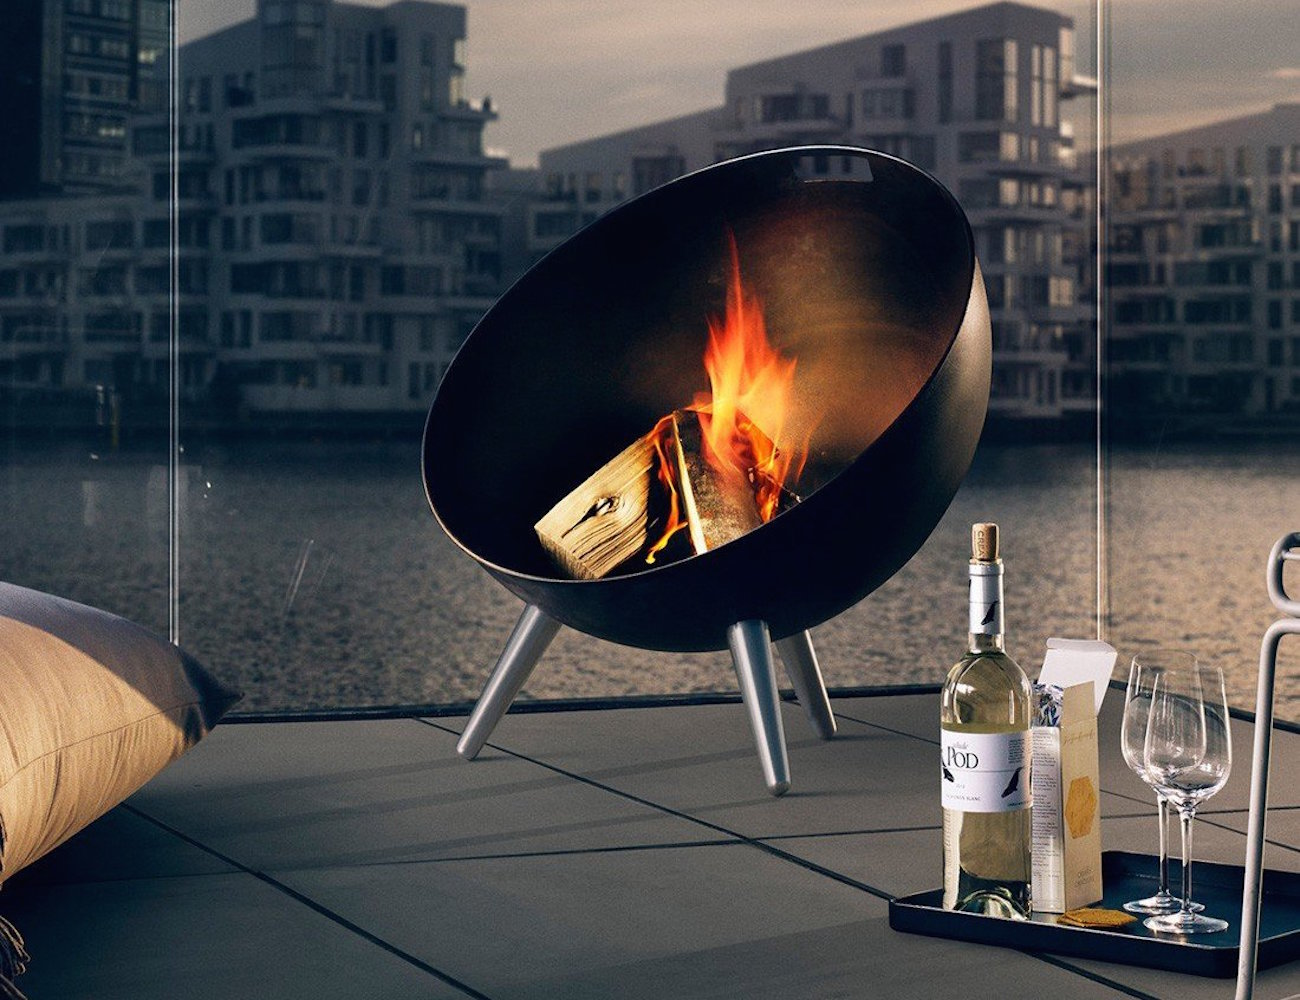 Fireglobe Fireplace by Eva Solo – Beautiful Accessory For Any Outdoor Space